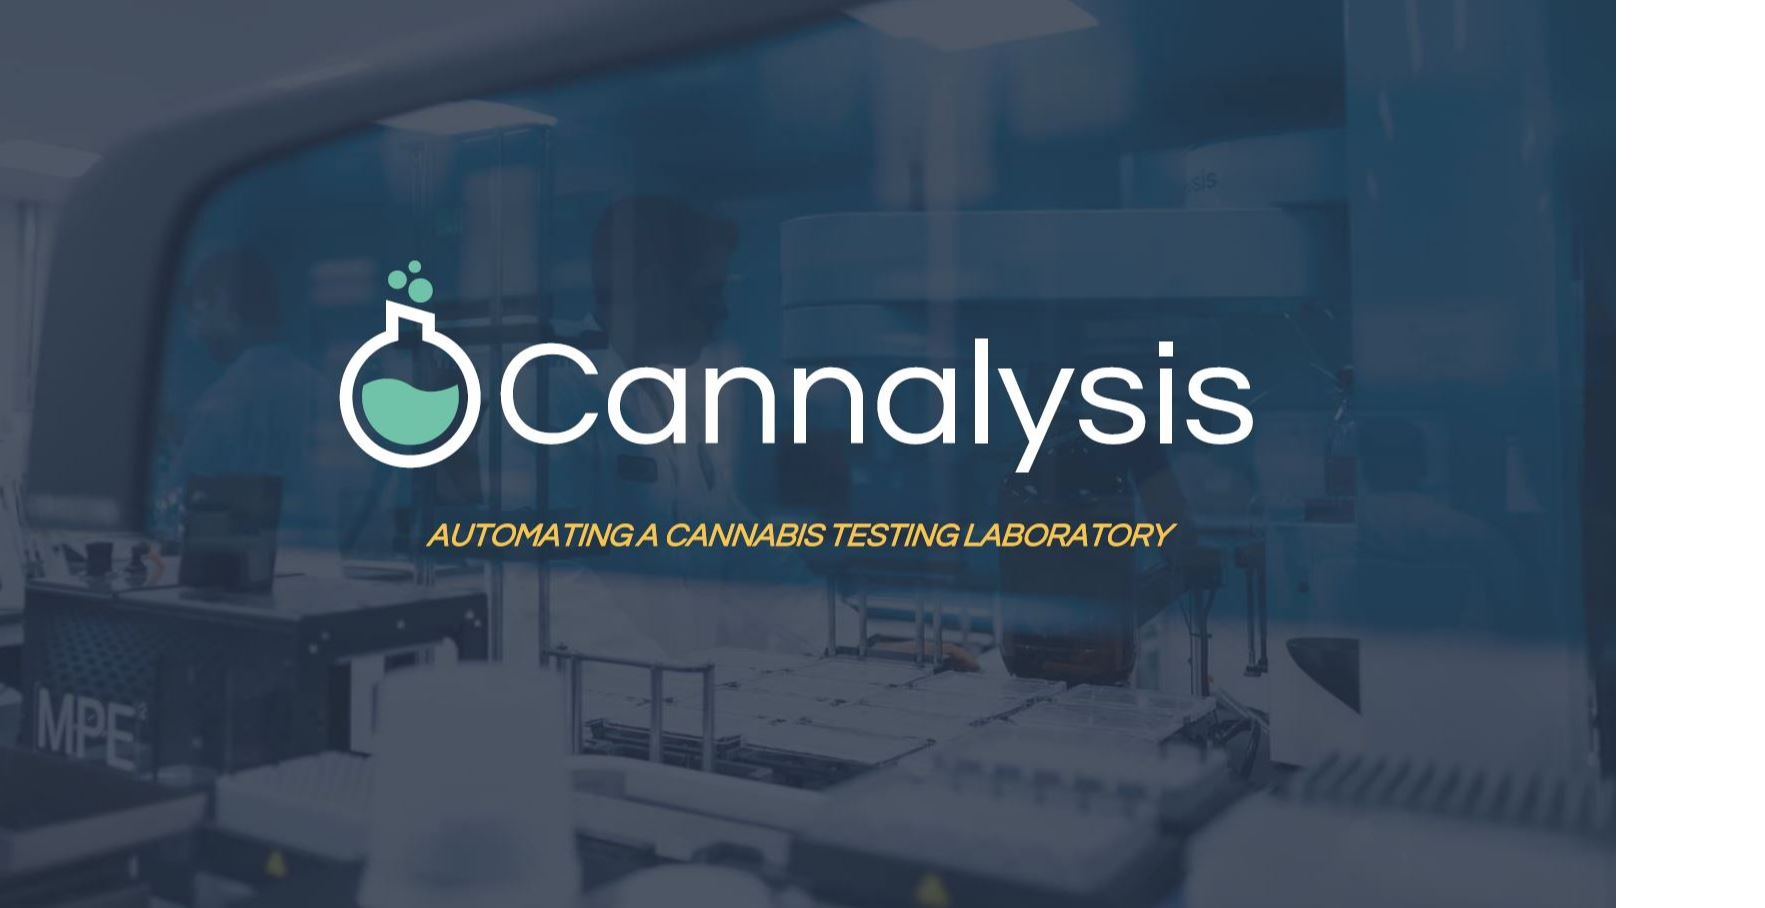 SLAS 2020 Cannalysis Tutorial